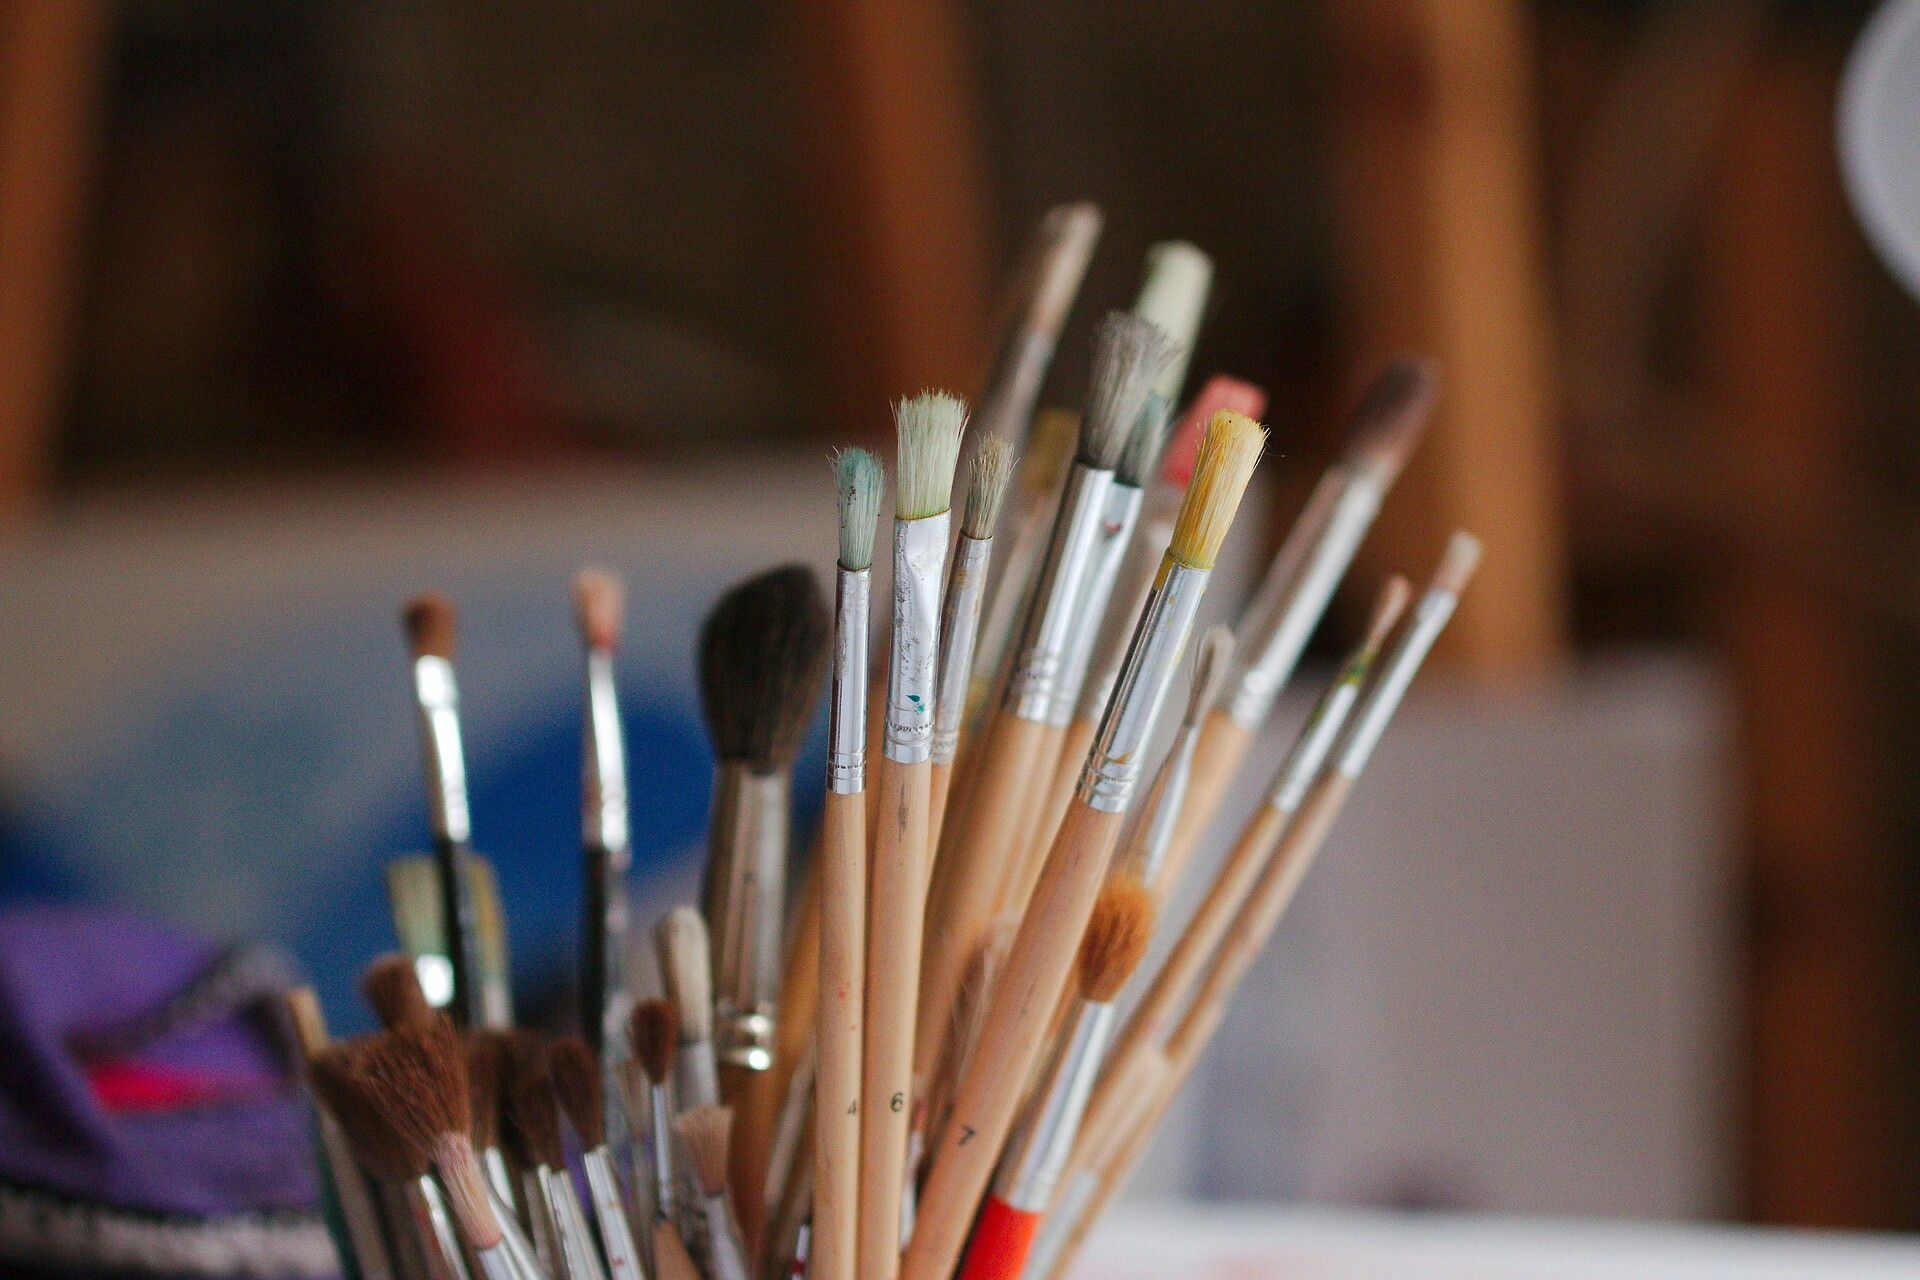 Painting (With images) Oil paint brushes, Paint thinner